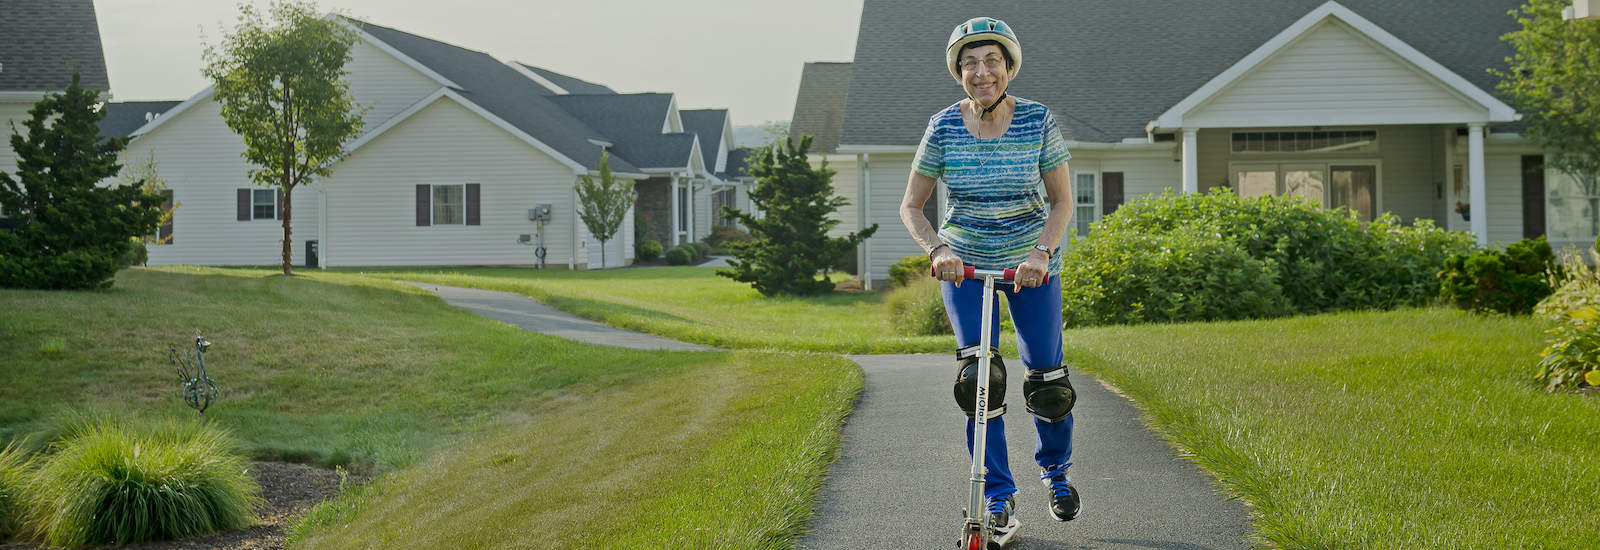 resident riding a scooter ont the walkway of Bethany village